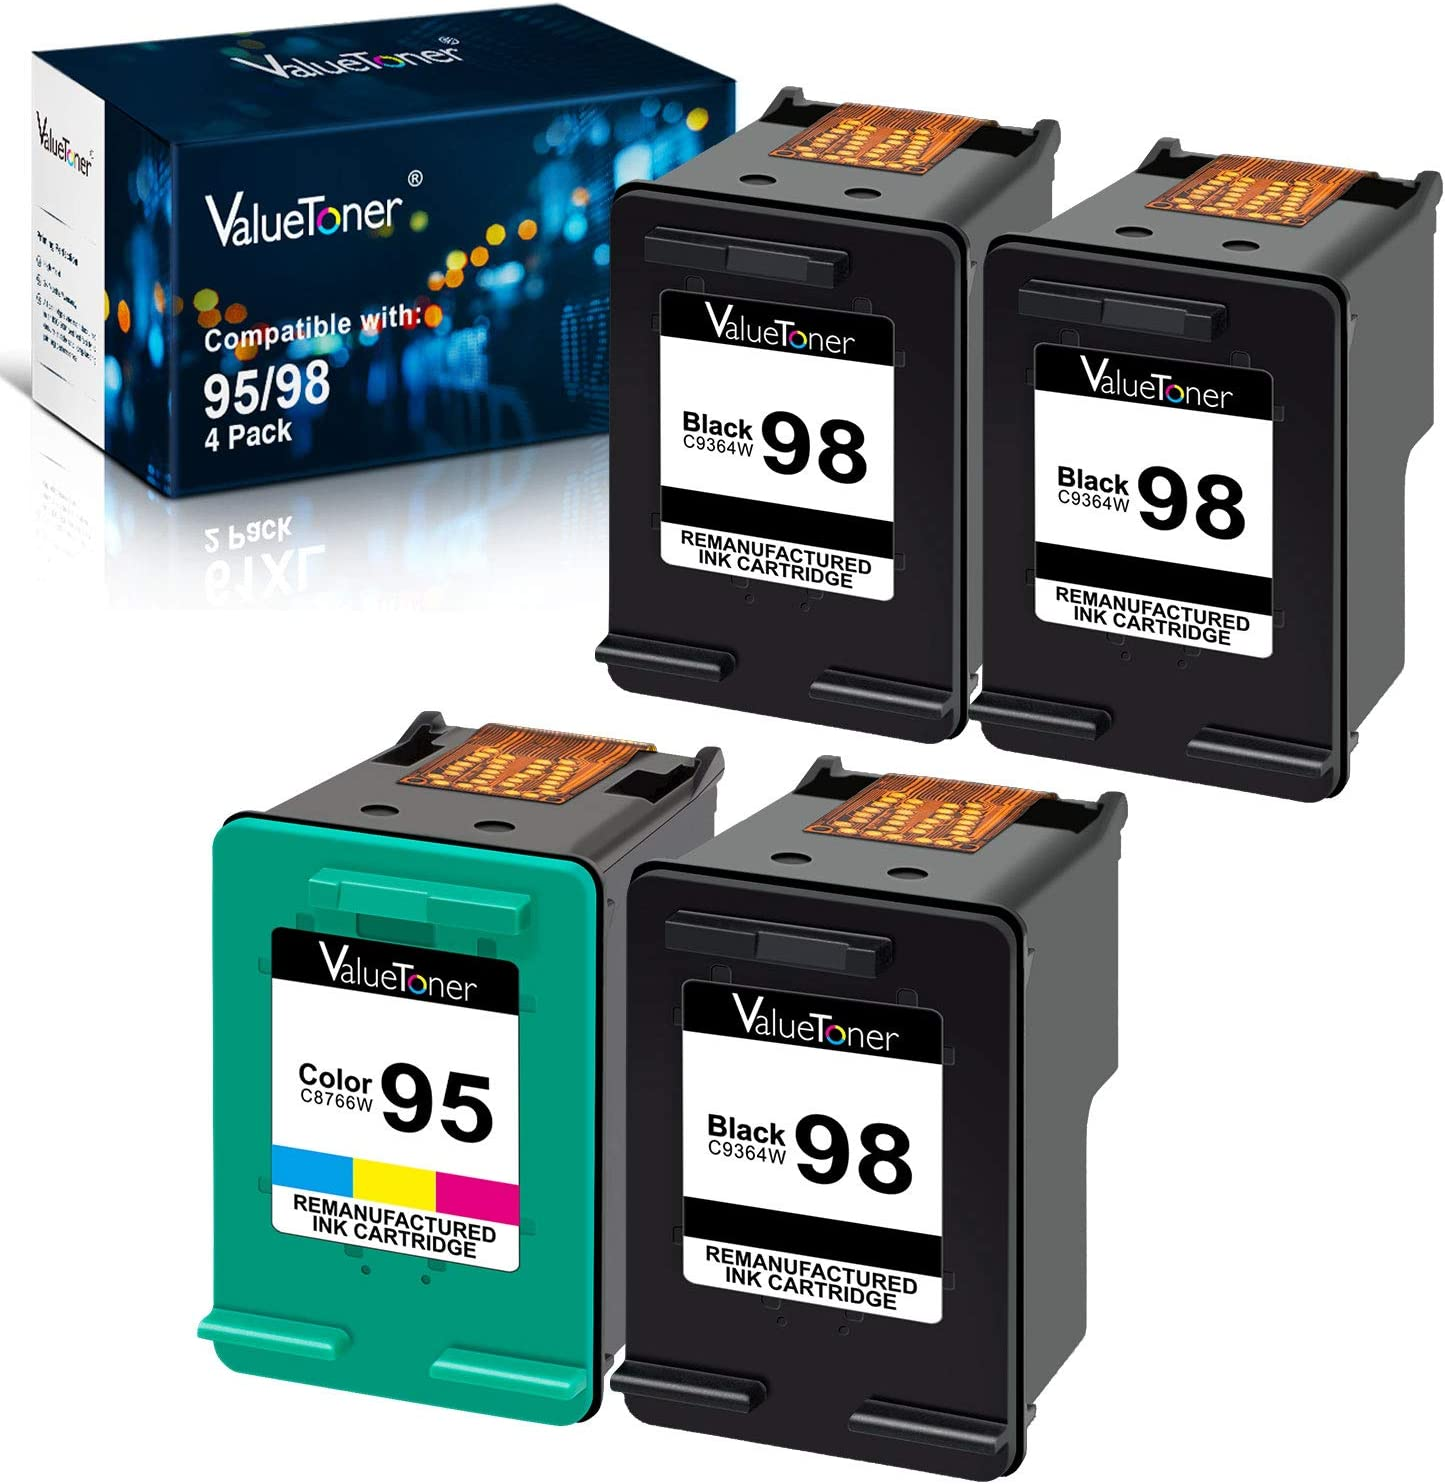 Valuetoner Remanufactured Ink Cartridges Replacement for HP 98 C9364WN & 95 C8766WN (1 Black, 1 Color) Bundled with 2 Black